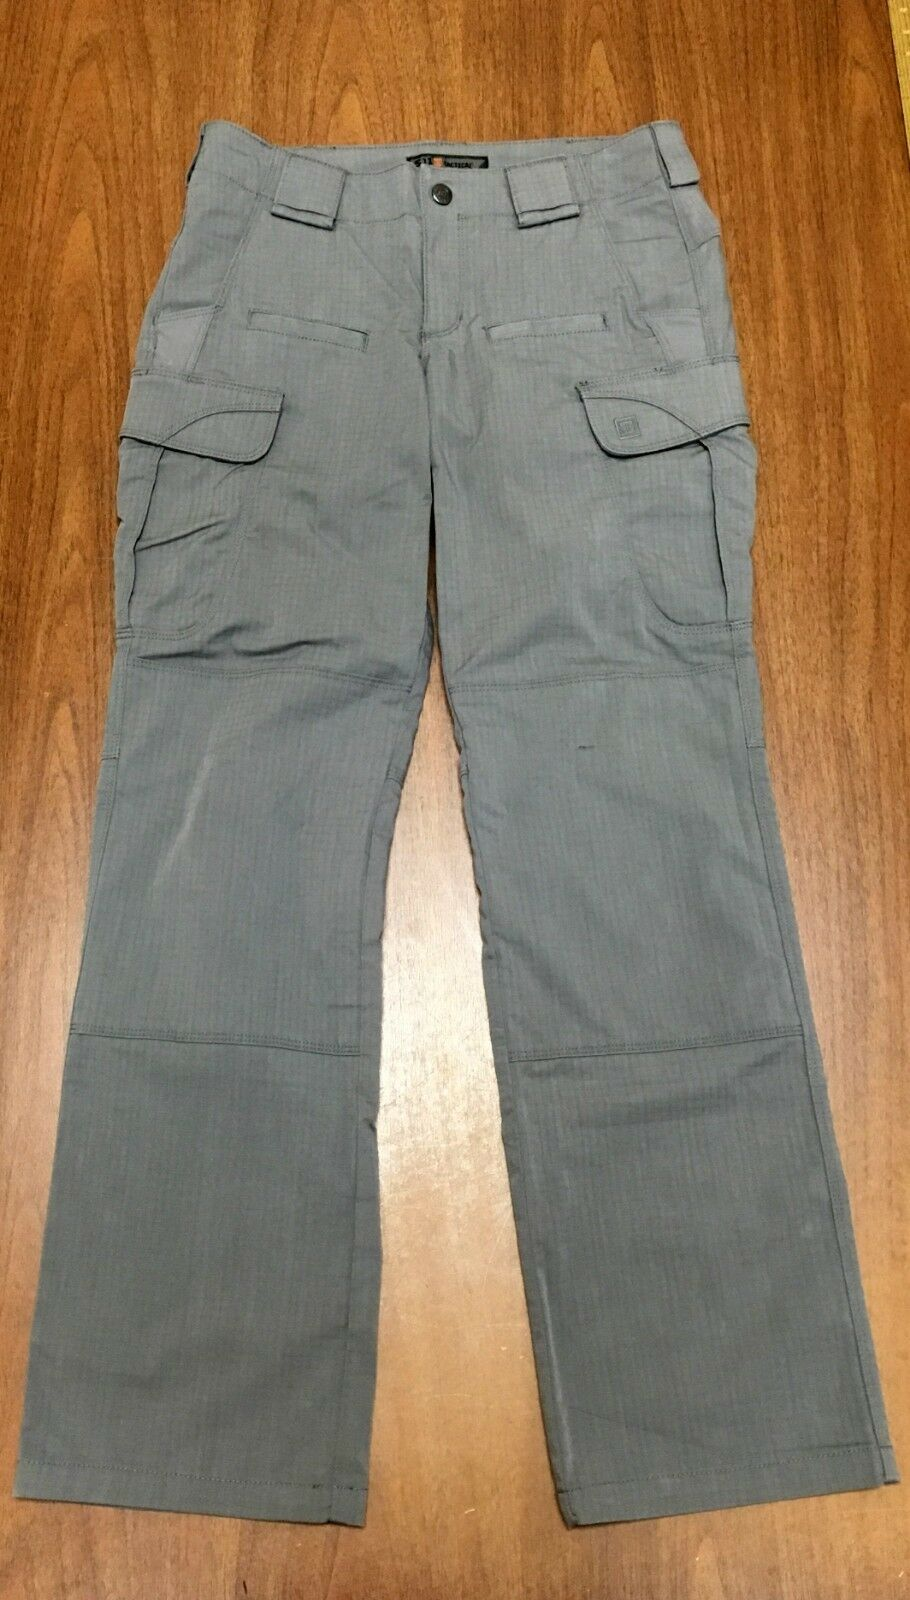 64386, 5.11 WMN Storm, SZ 4-Washed Once, LITTLE used.(SEE photos)